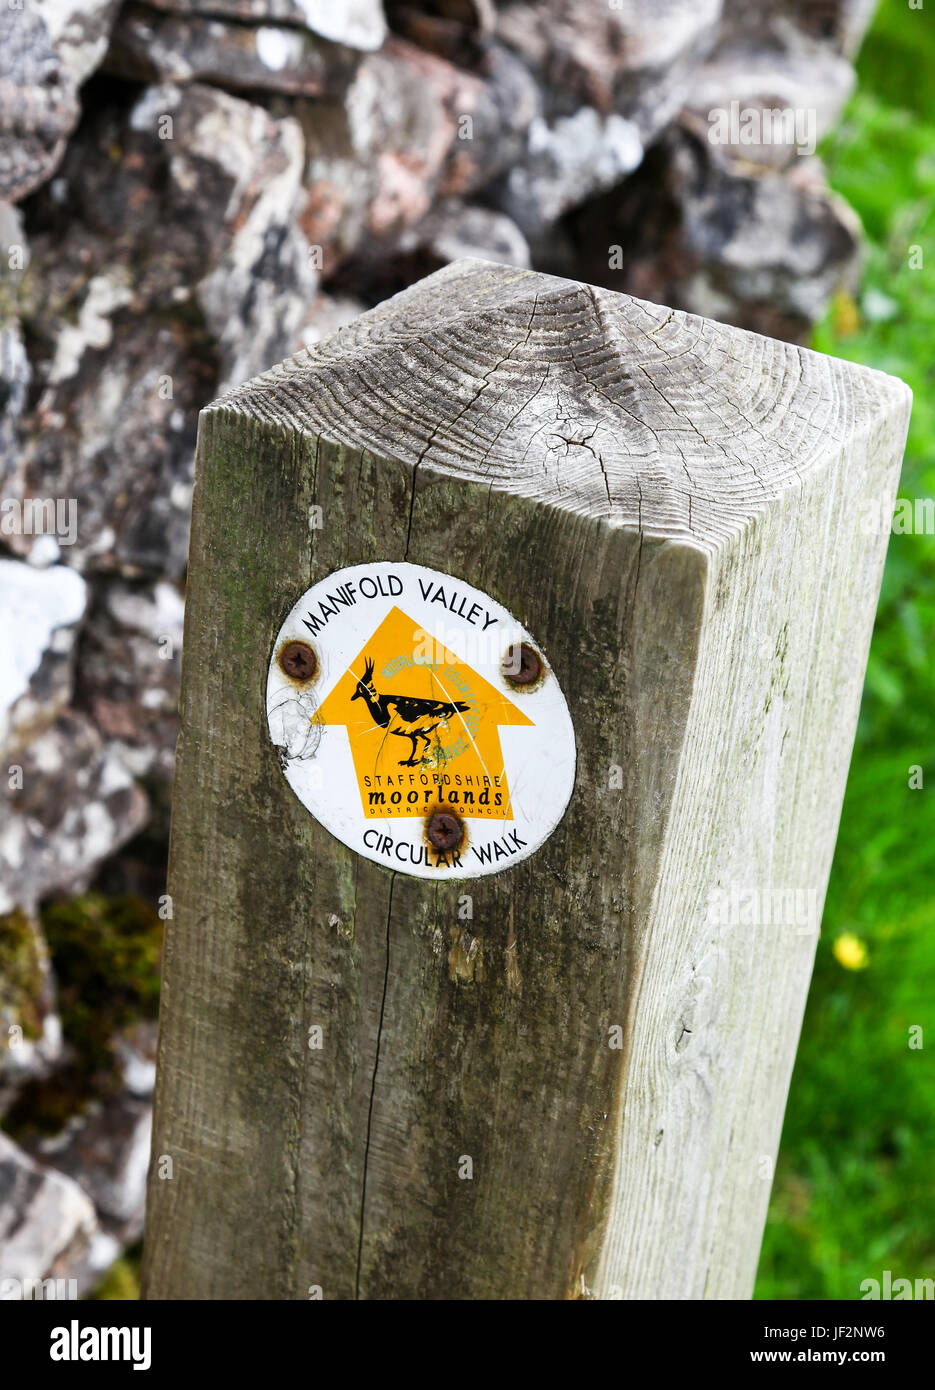 A waymarker on a wooden post with a yellow arrow showing the way on the Manifold Valley circular walk Ilam Staffordshire - Stock Image